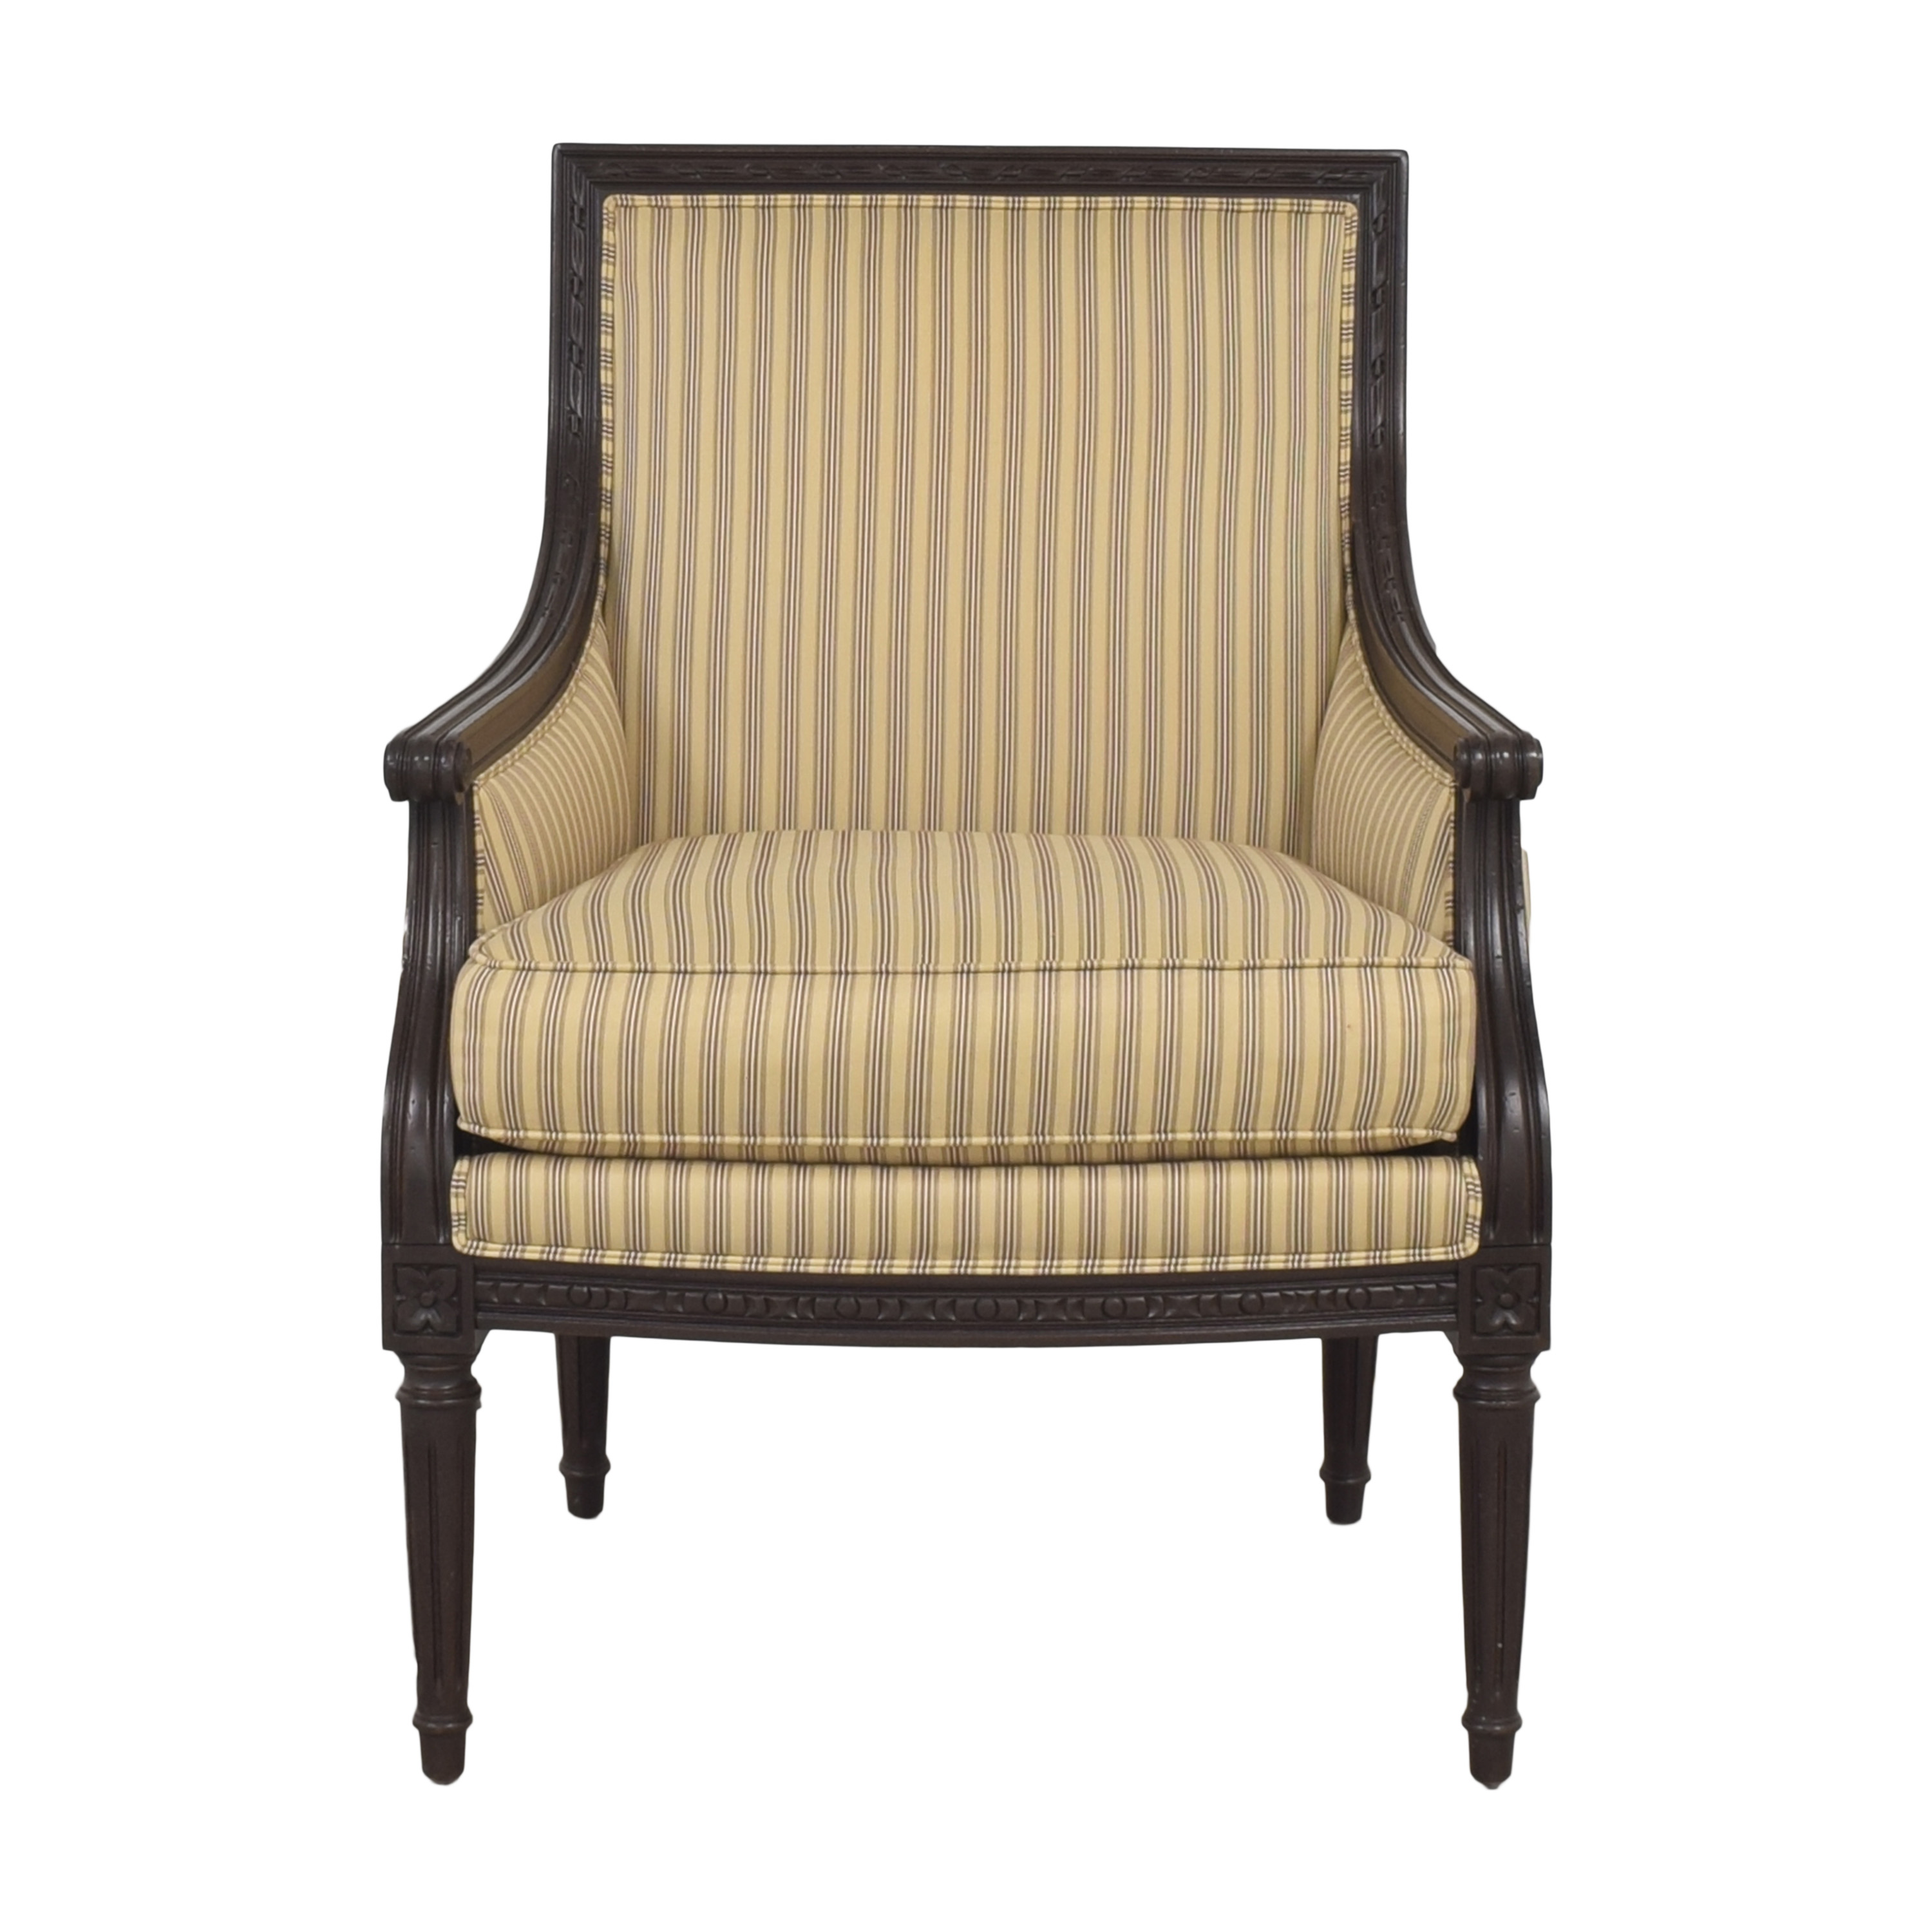 buy Ethan Allen Giselle Chair Ethan Allen Chairs